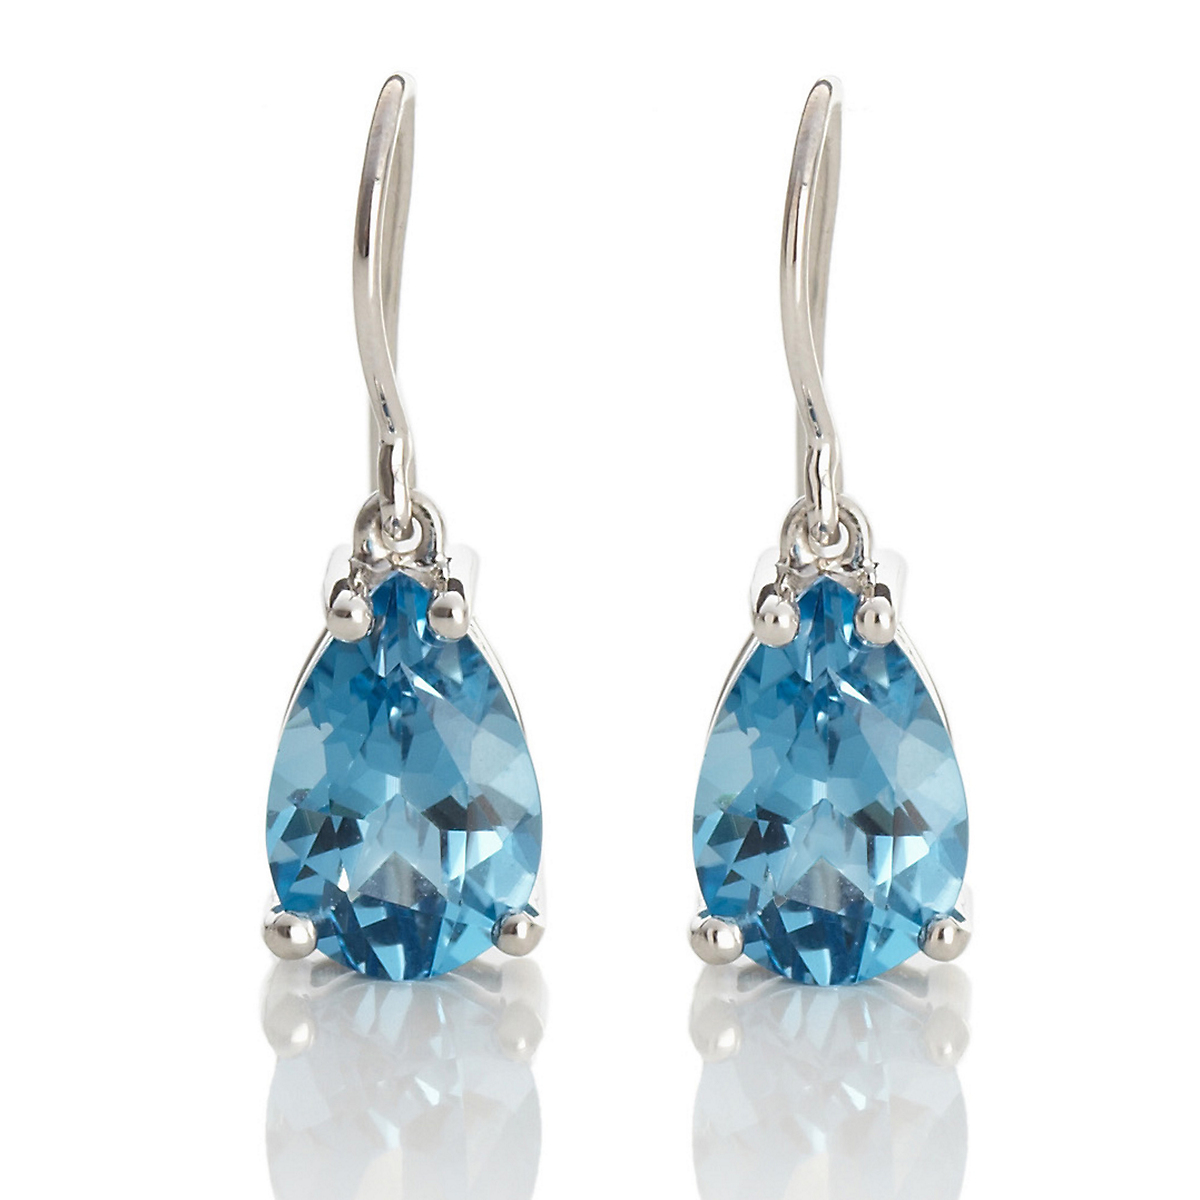 Gump's Faceted Deep Blue Teardrop Topaz Earrings